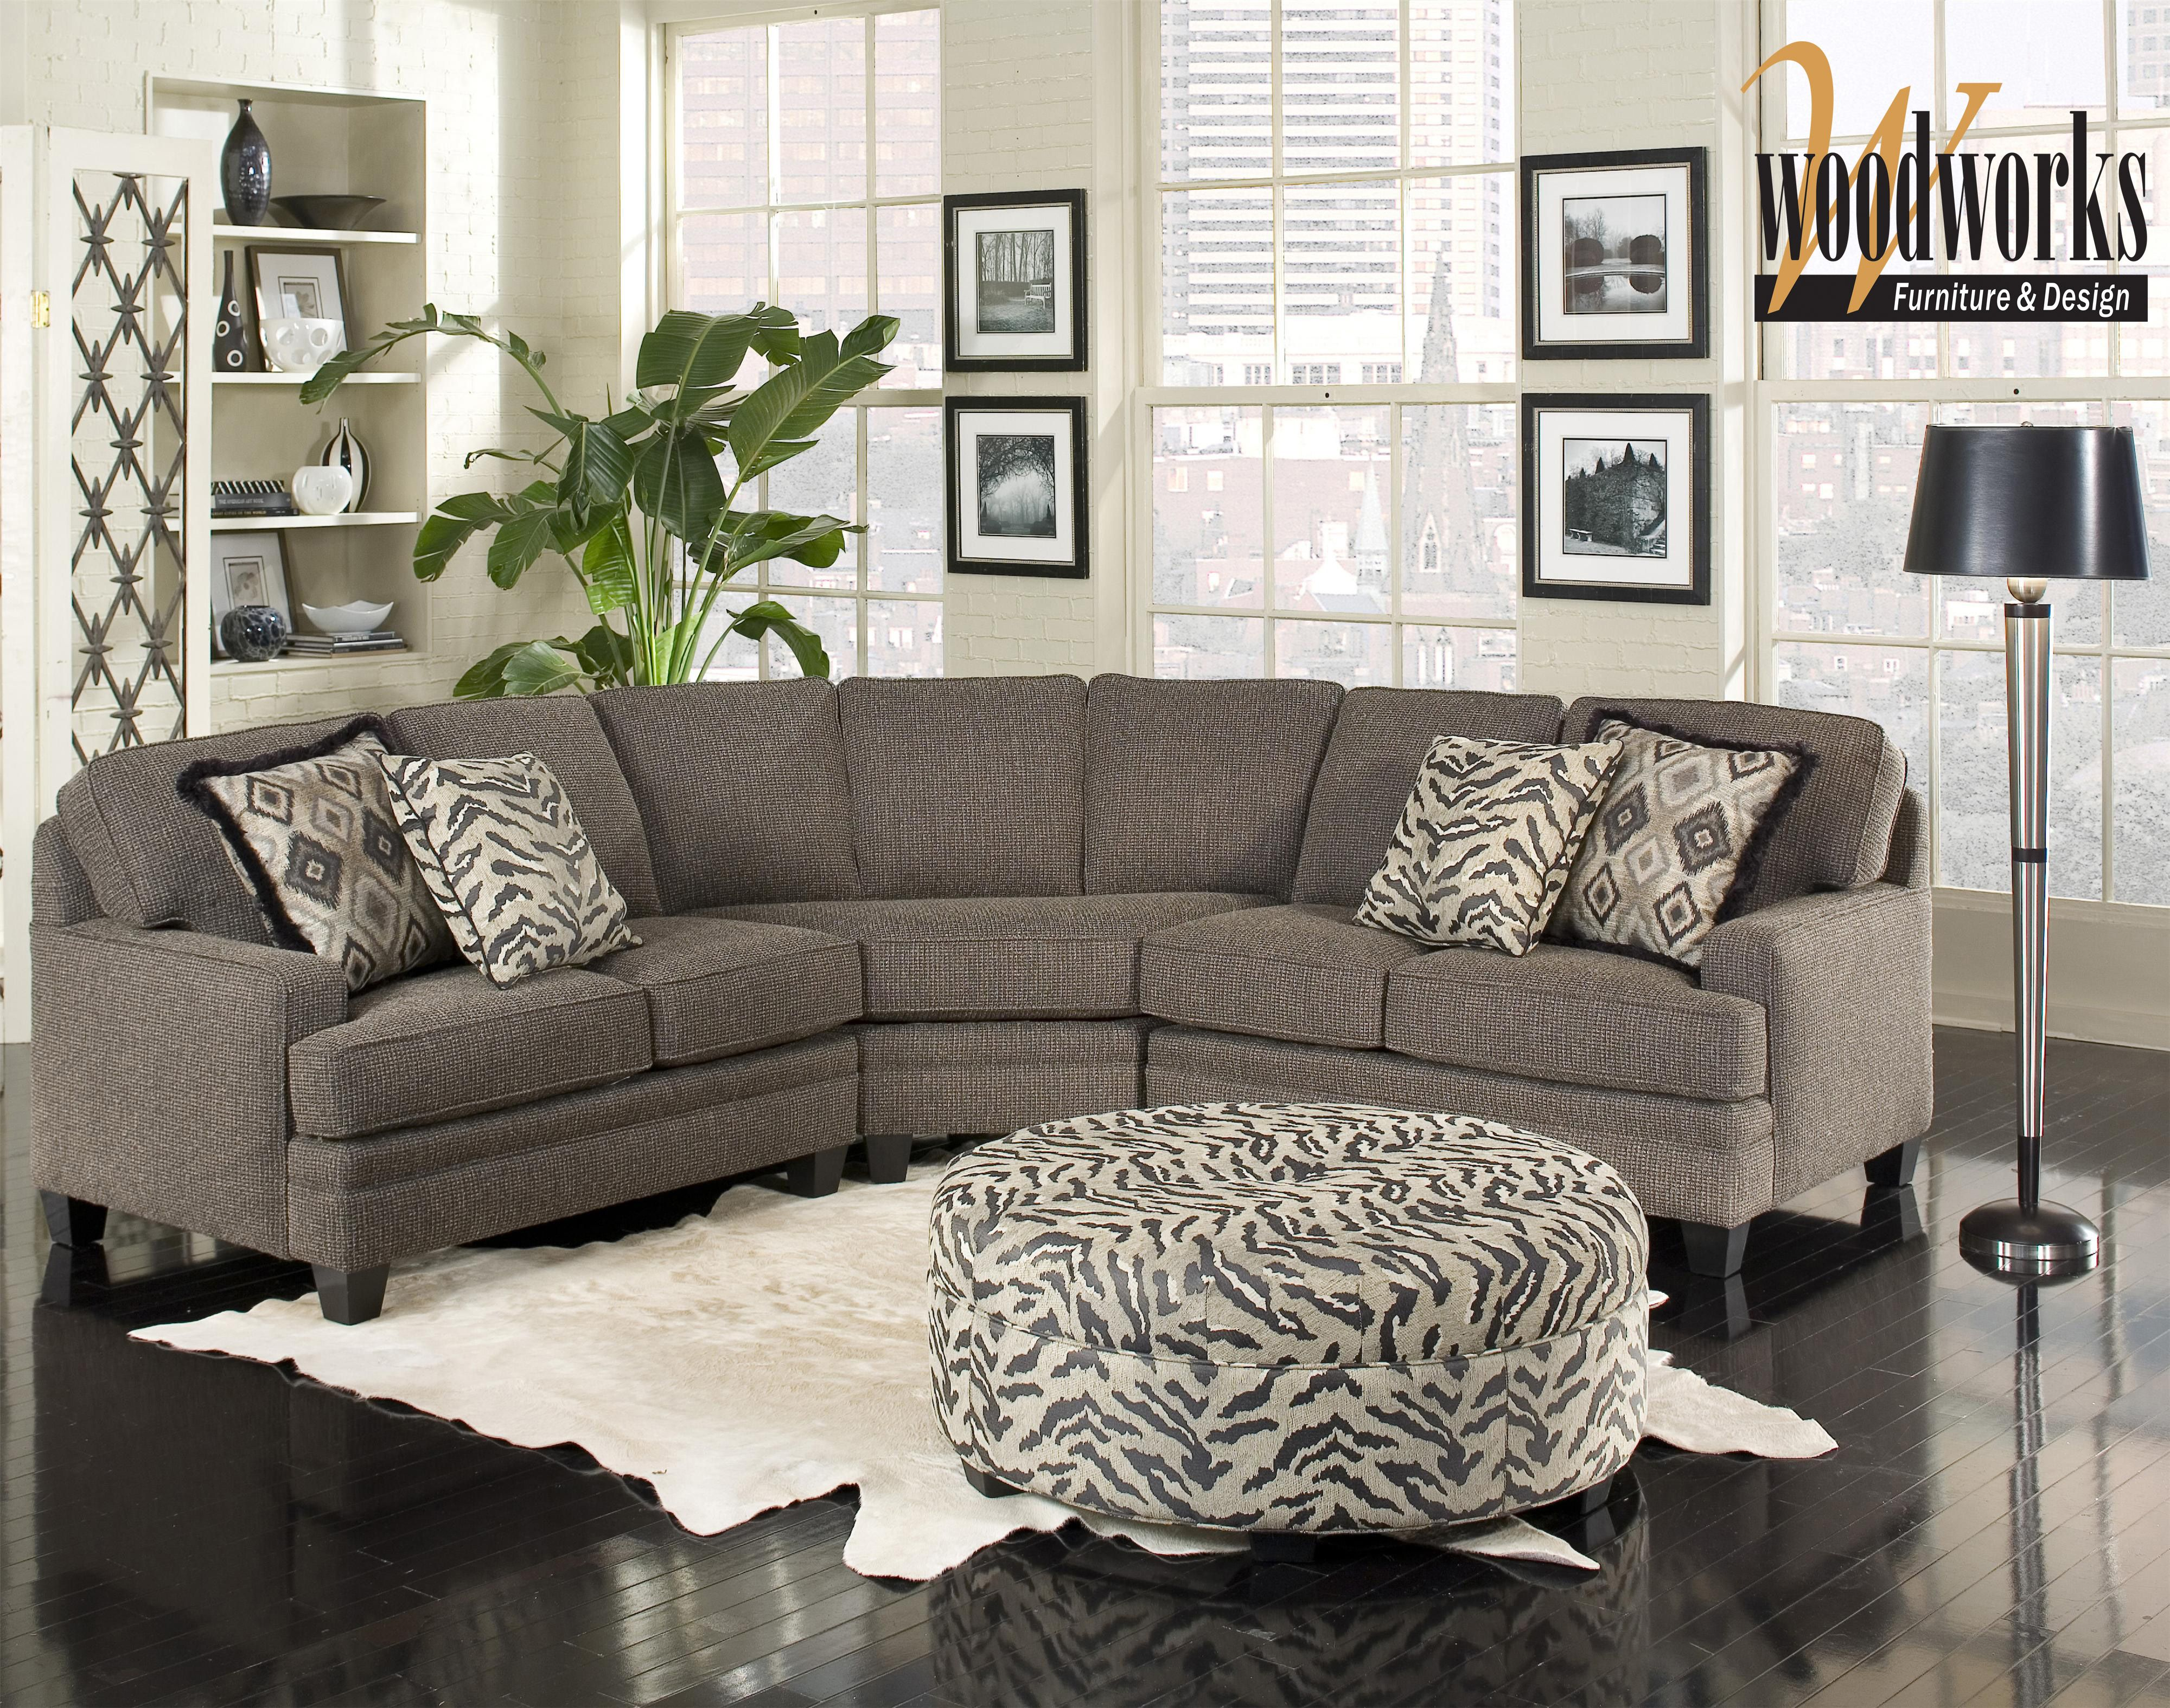 Build Your Own 5000 Series Sectional Sofa By Smith Brothers And